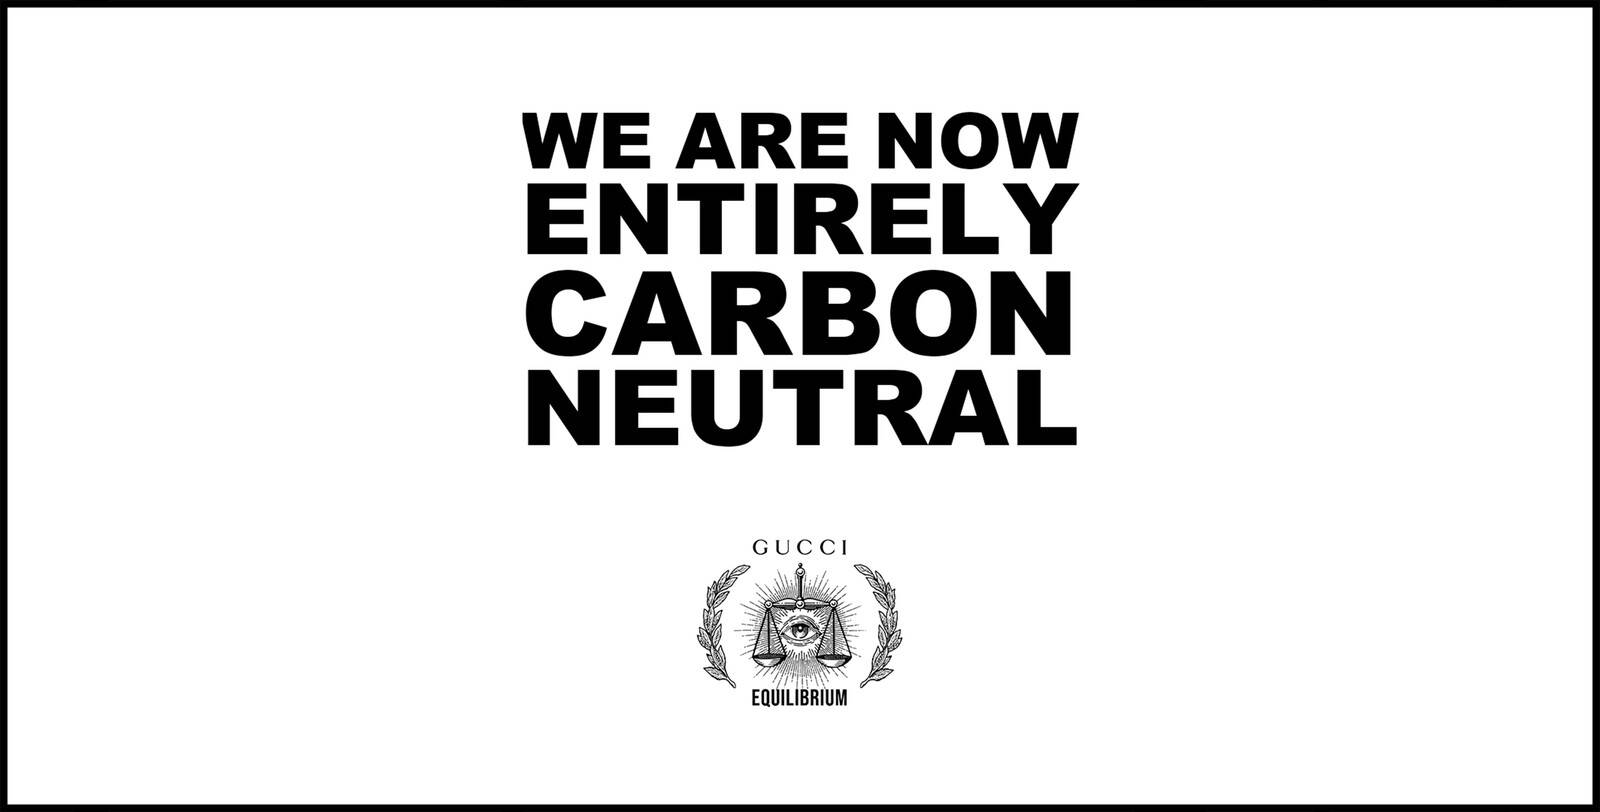 gucci-now-neutral-carbon